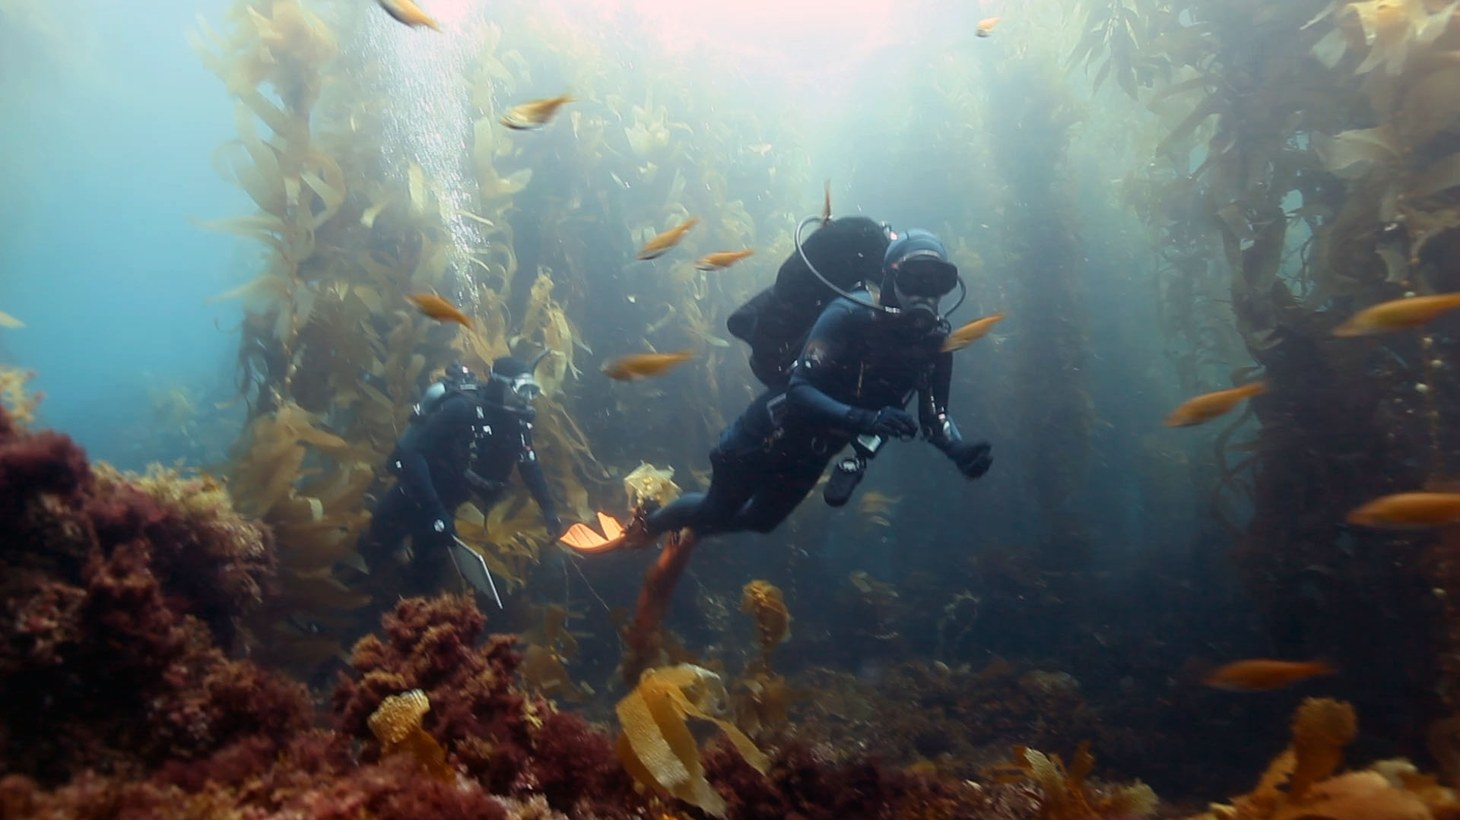 Divers have long been drawn to the golden-colored kelp forests and diverse wildlife off the coast of Santa Cruz Island.